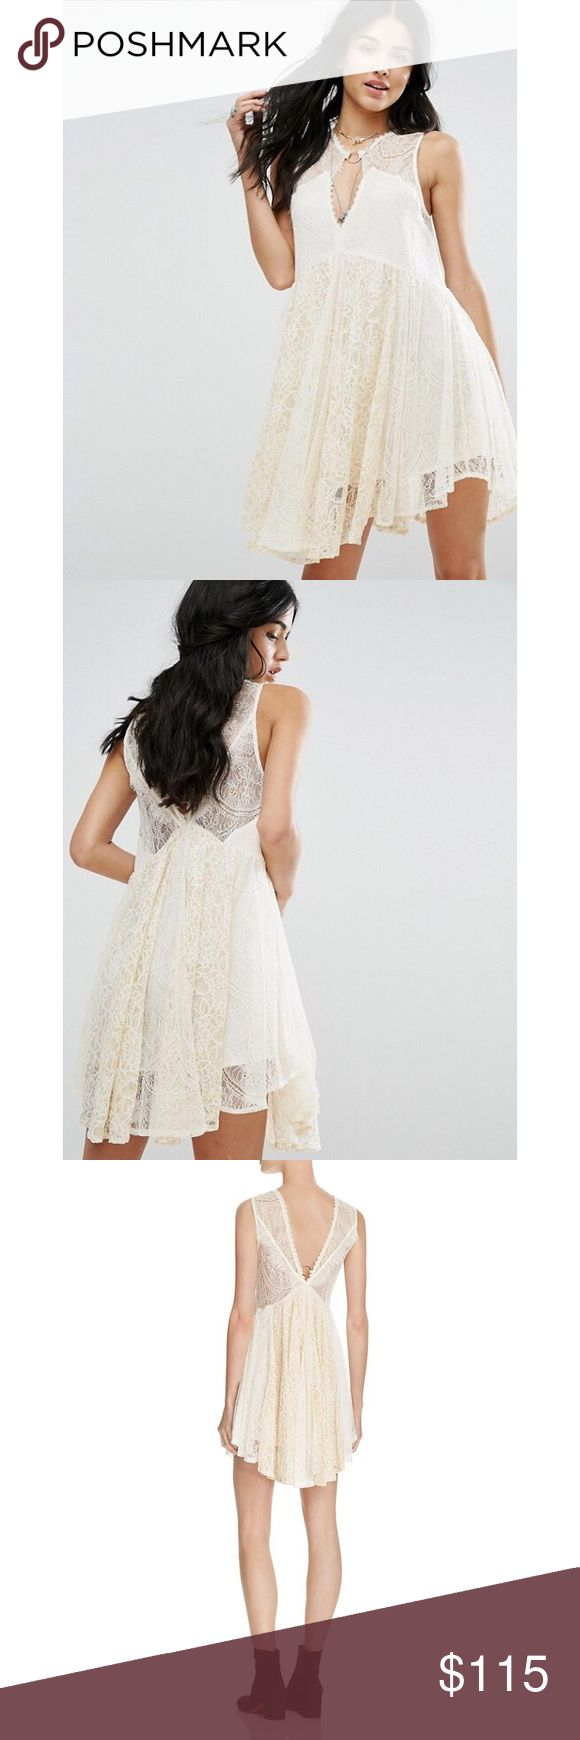 Free People Lace Dress Brand new with tags. Retail: $128. Beautiful dress for any occasion! Free People Dresses